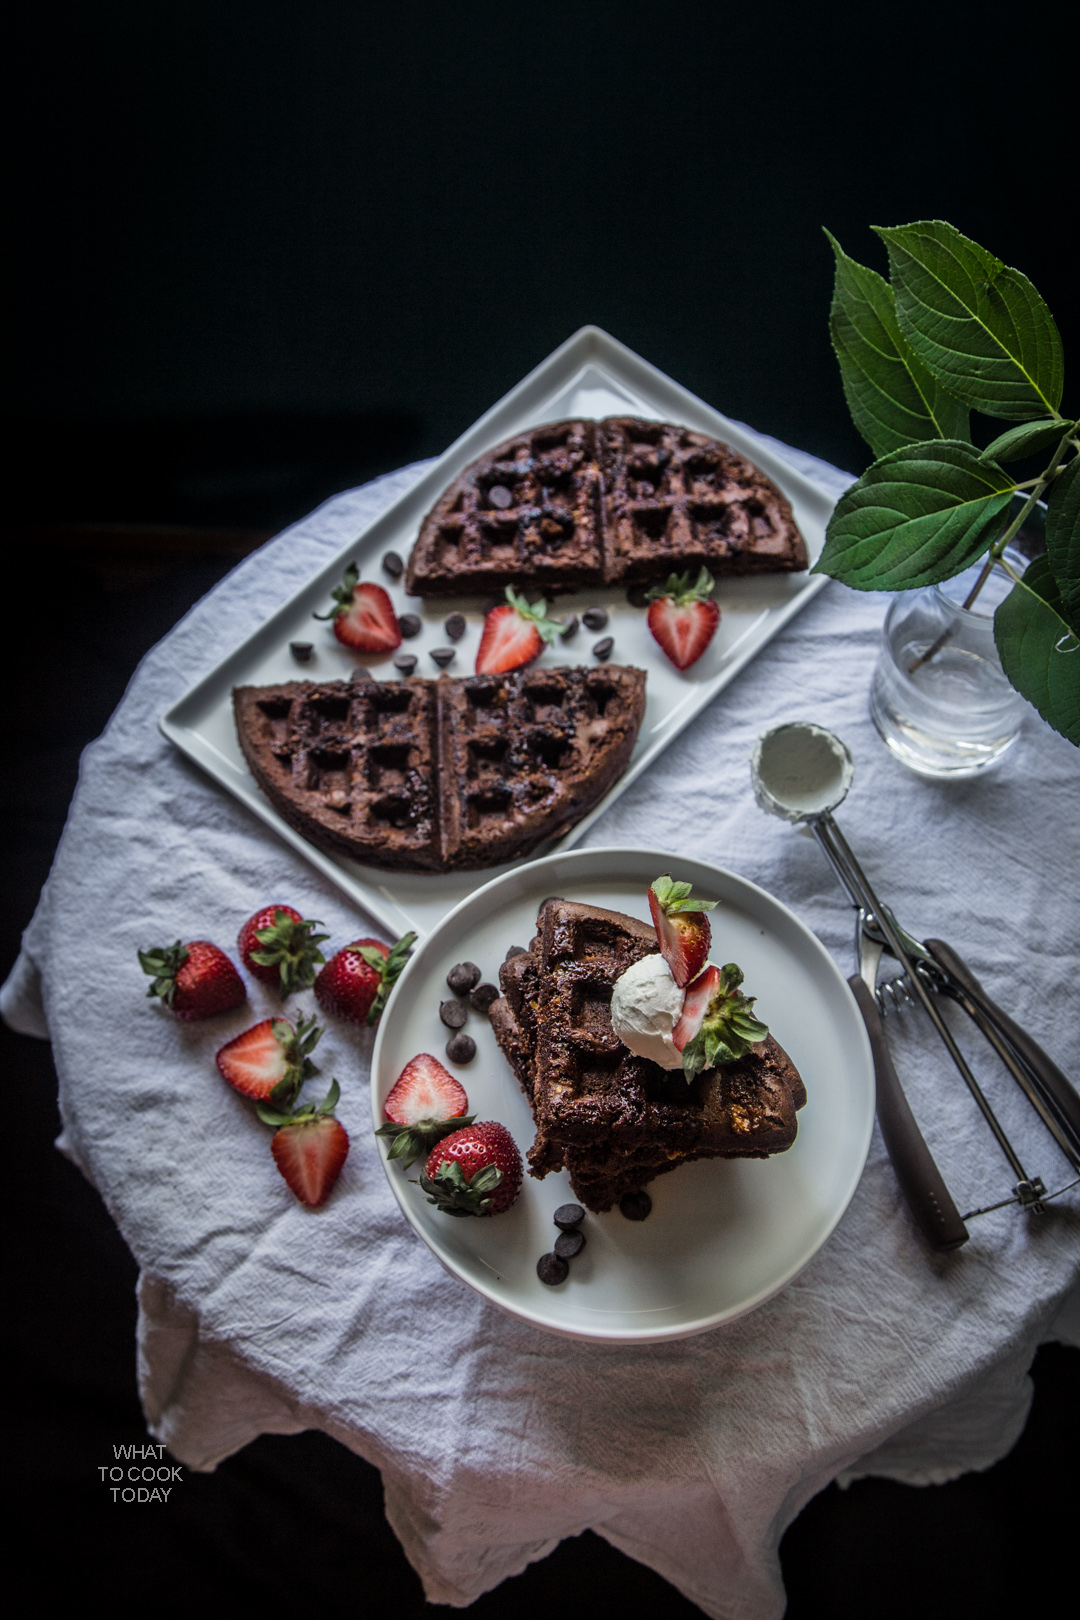 Brownie waffles with mascarpone and berries #mixinmoments #ads